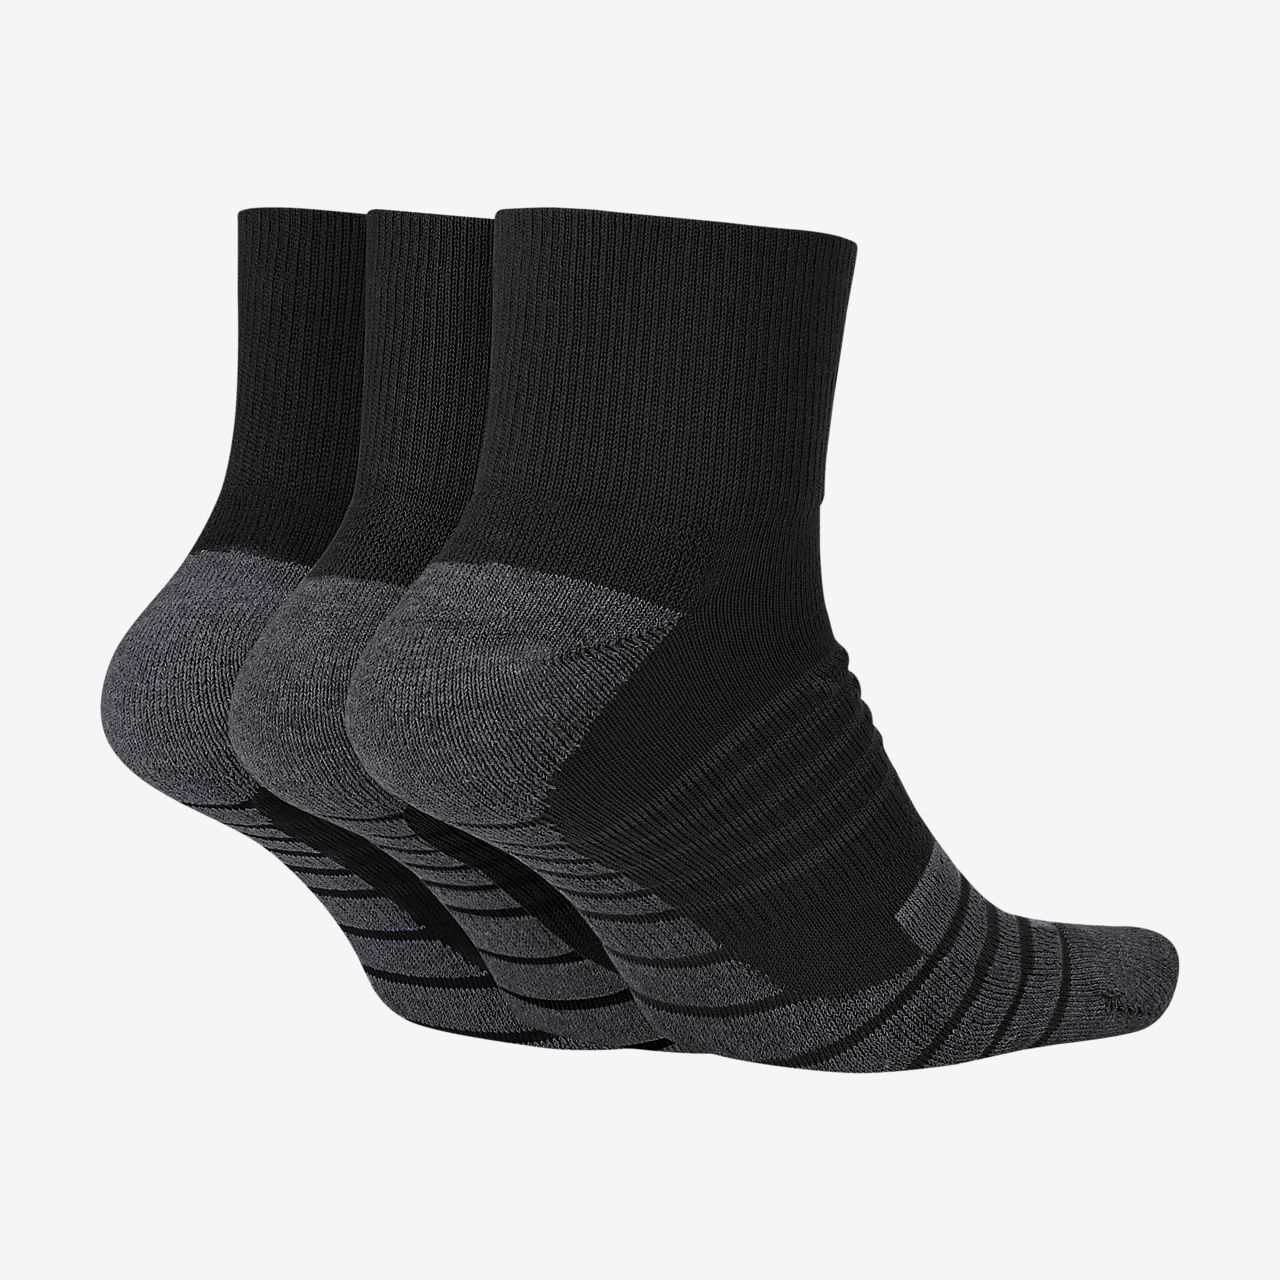 Men's Low Cut Cushioned Extended Size Socks, 6 Pack